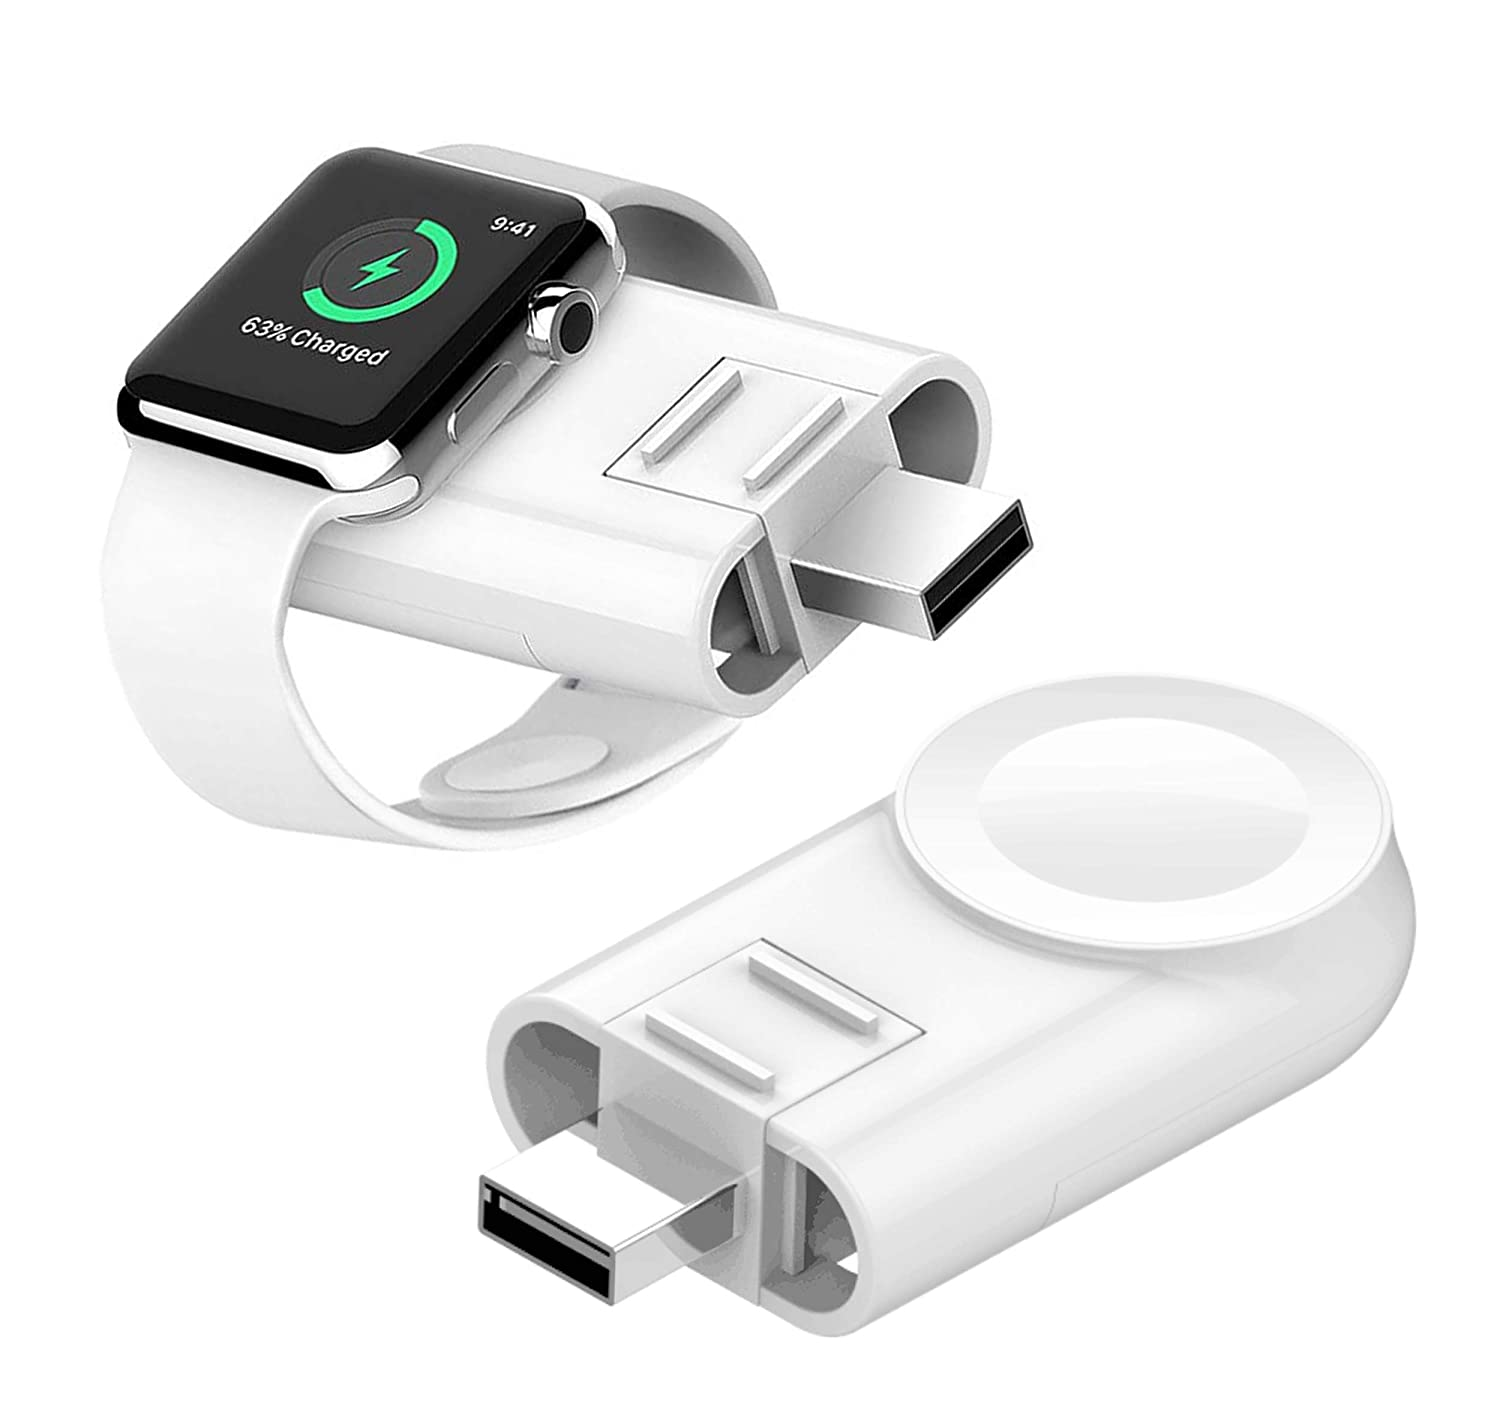 Wireless Watch Charger for Apple Watch,Portable USB Magnetic iWatch Charger Compatible with Apple Watch Series 5 4 3 2 1